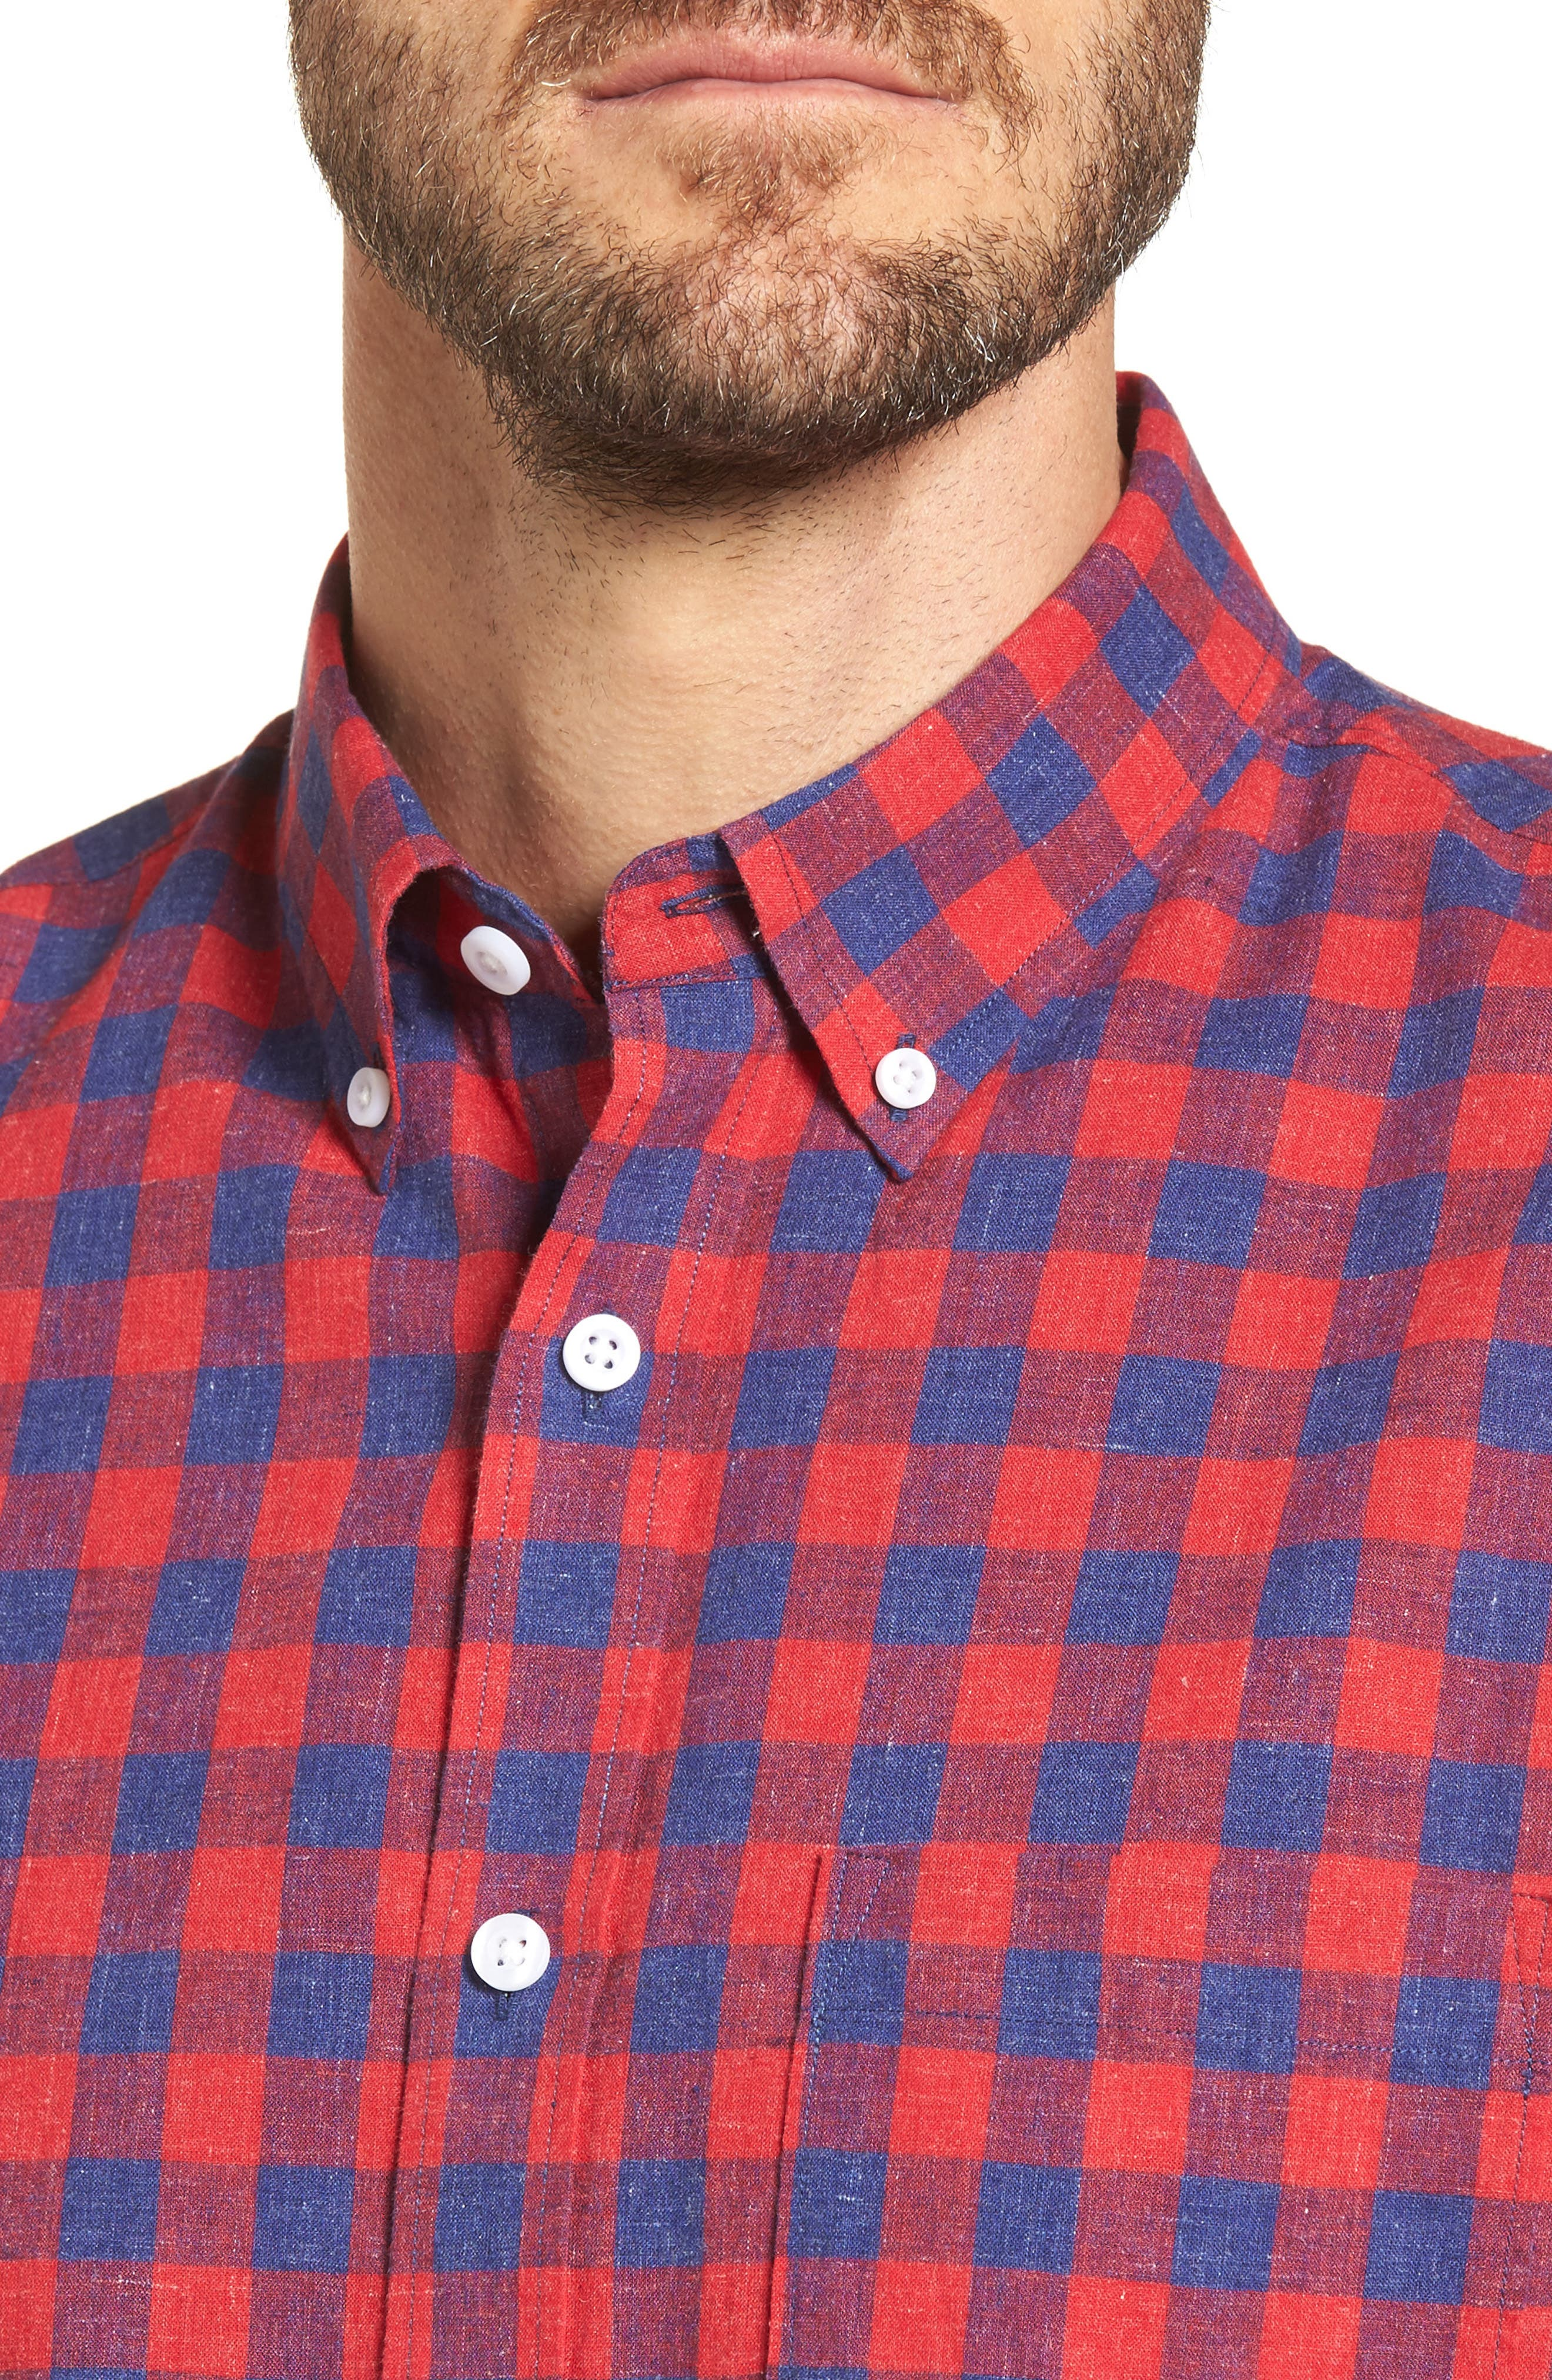 Spade Trim Fit Check Sport Shirt,                             Alternate thumbnail 4, color,                             Red Chili Blue Check